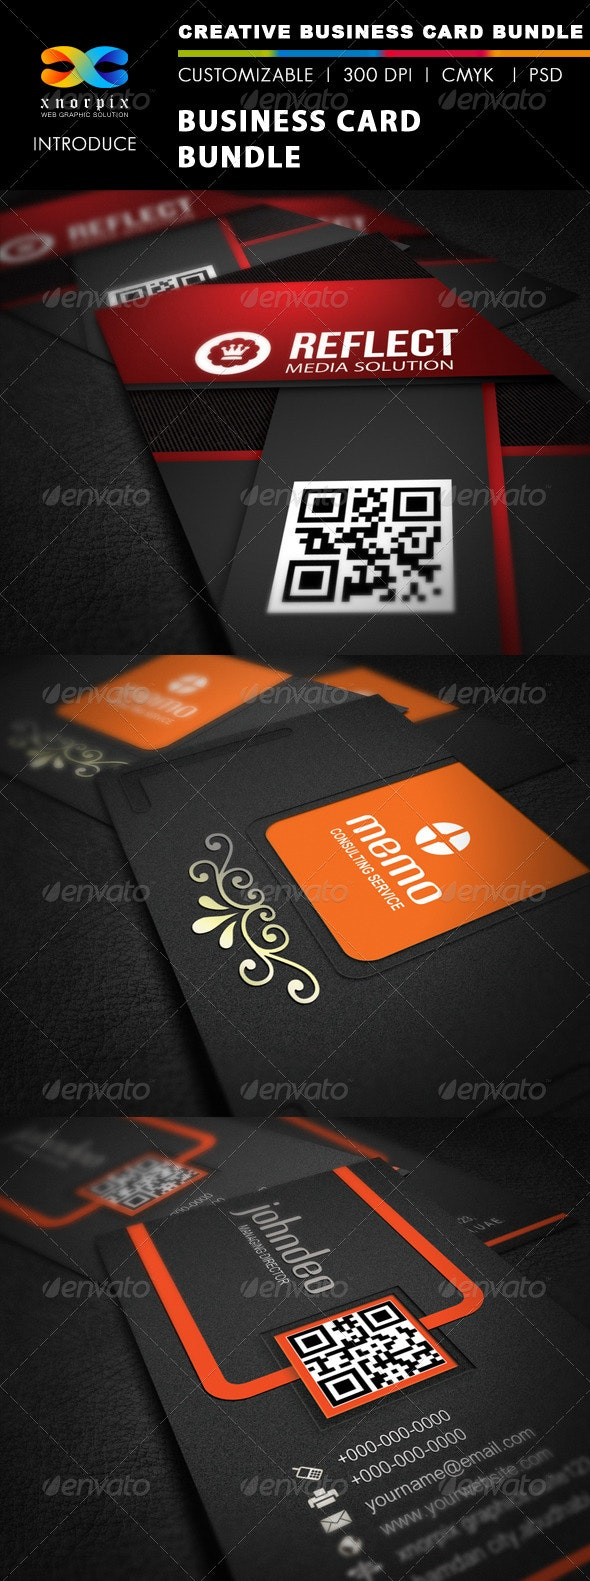 Business Card Bundle 3 in 1-Vol 9 - Corporate Business Cards